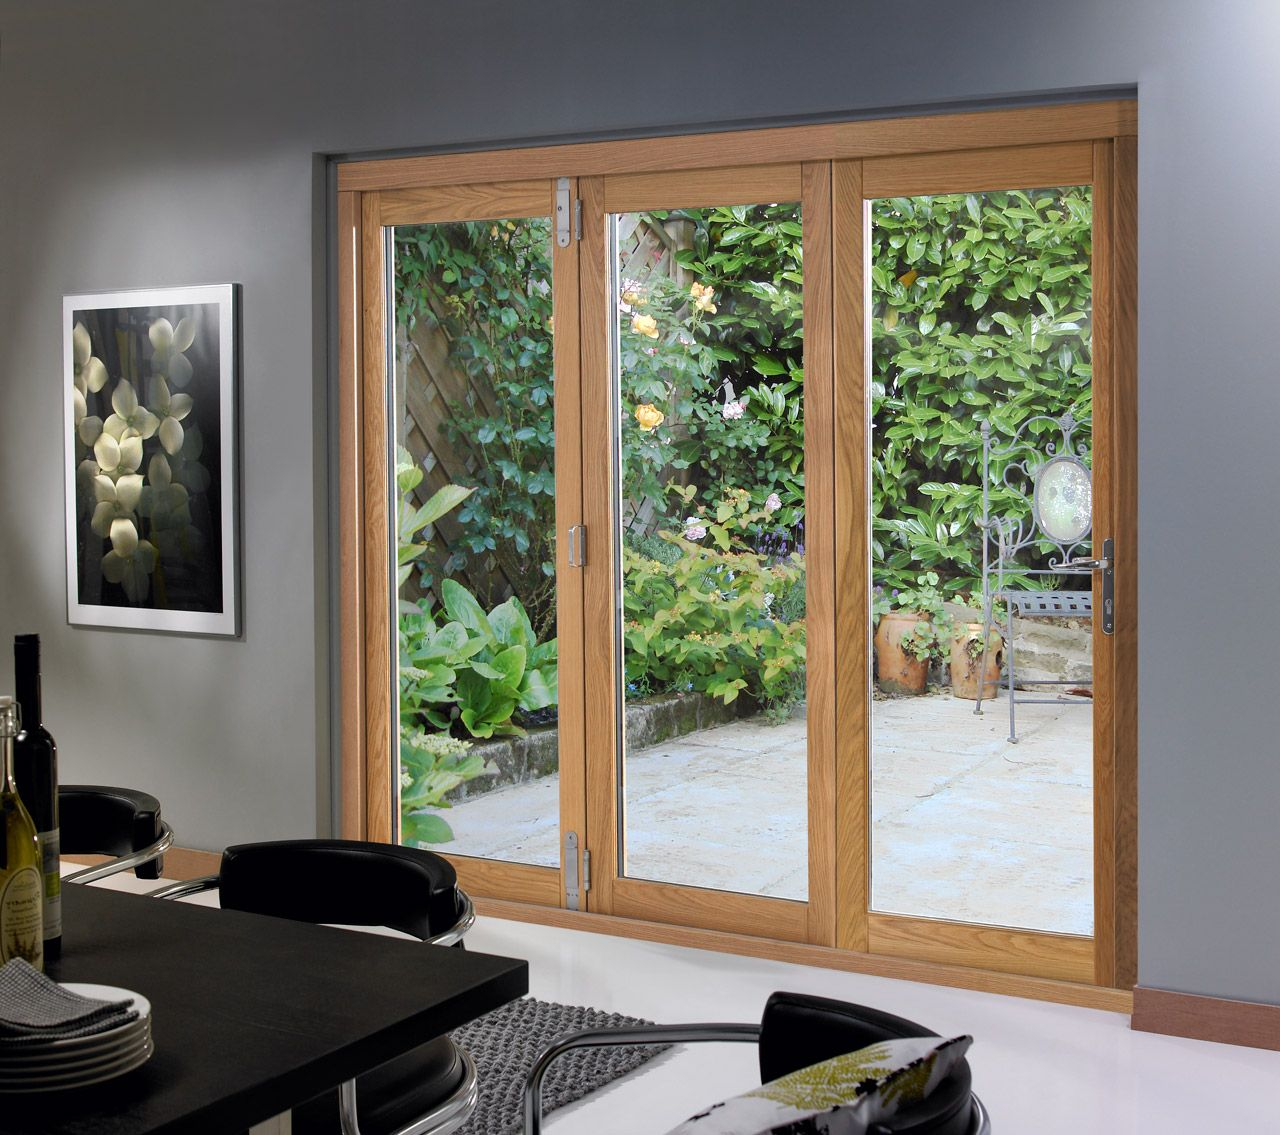 3 Panel Sliding Patio Door